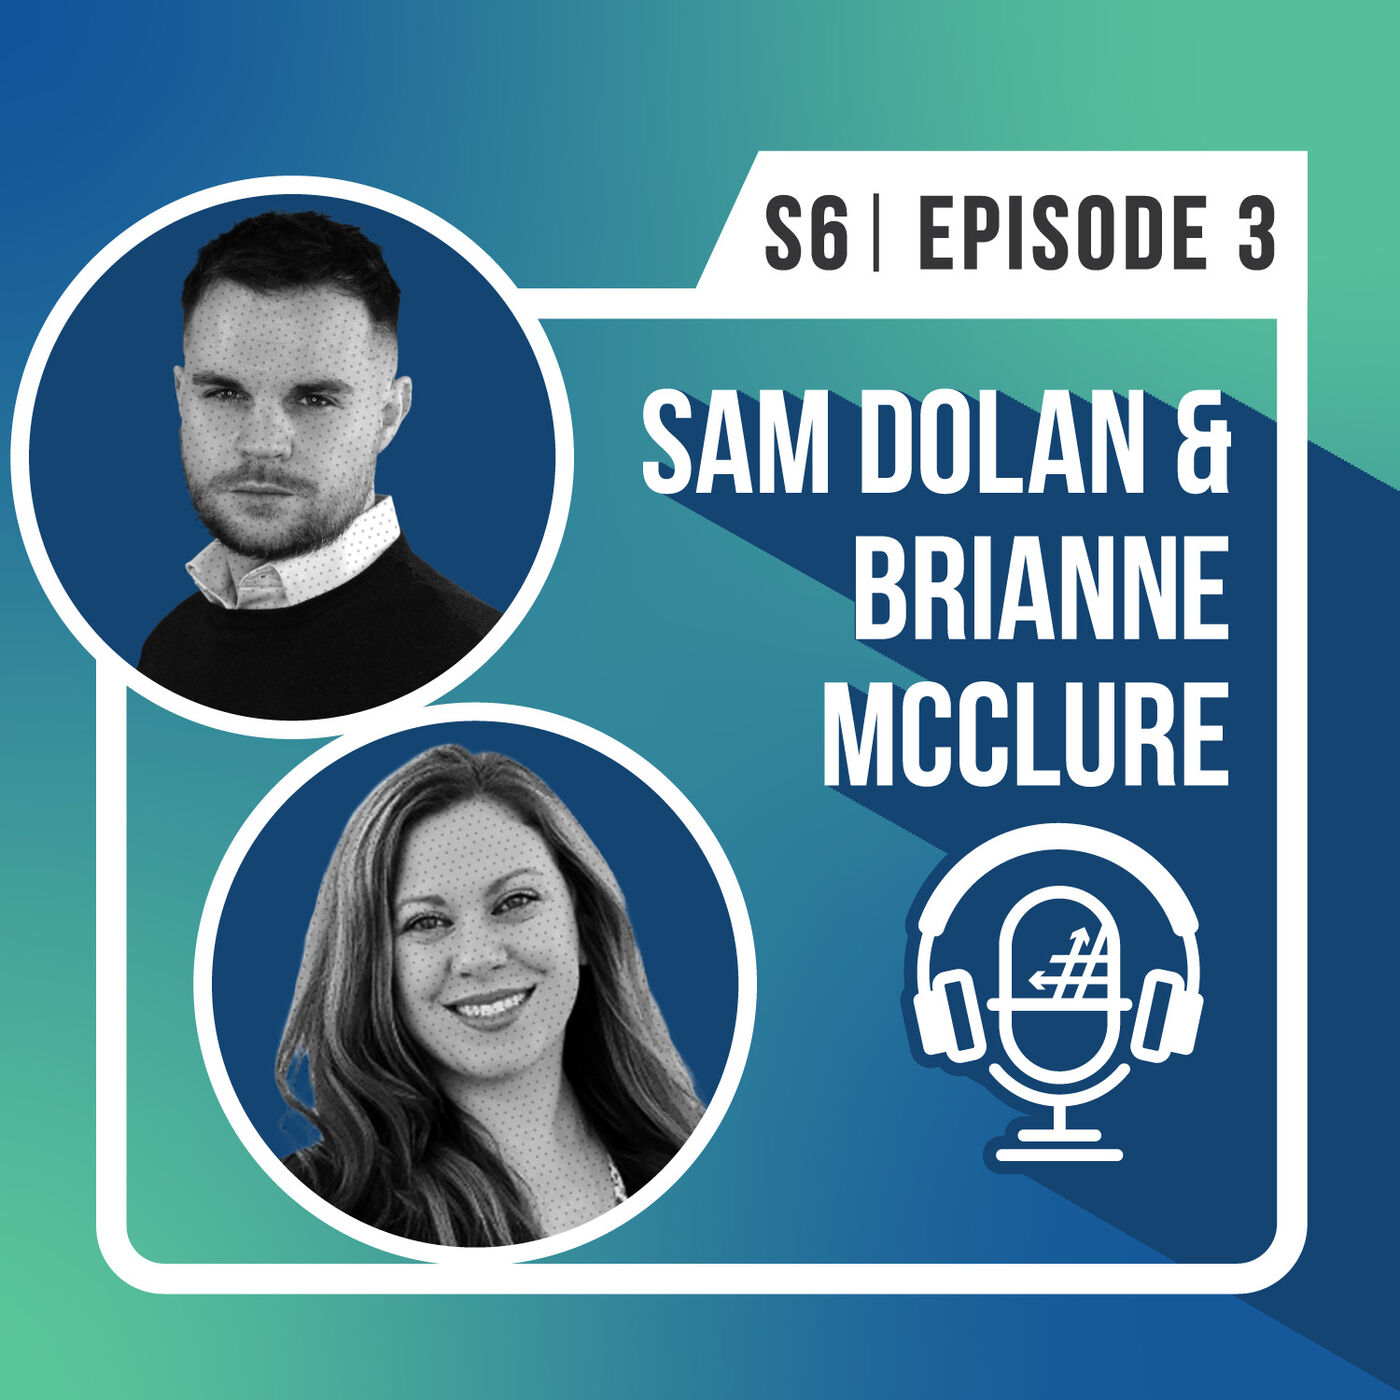 S6 E3: Building a Better Intranet with Sam Dolan and Brianne McClure